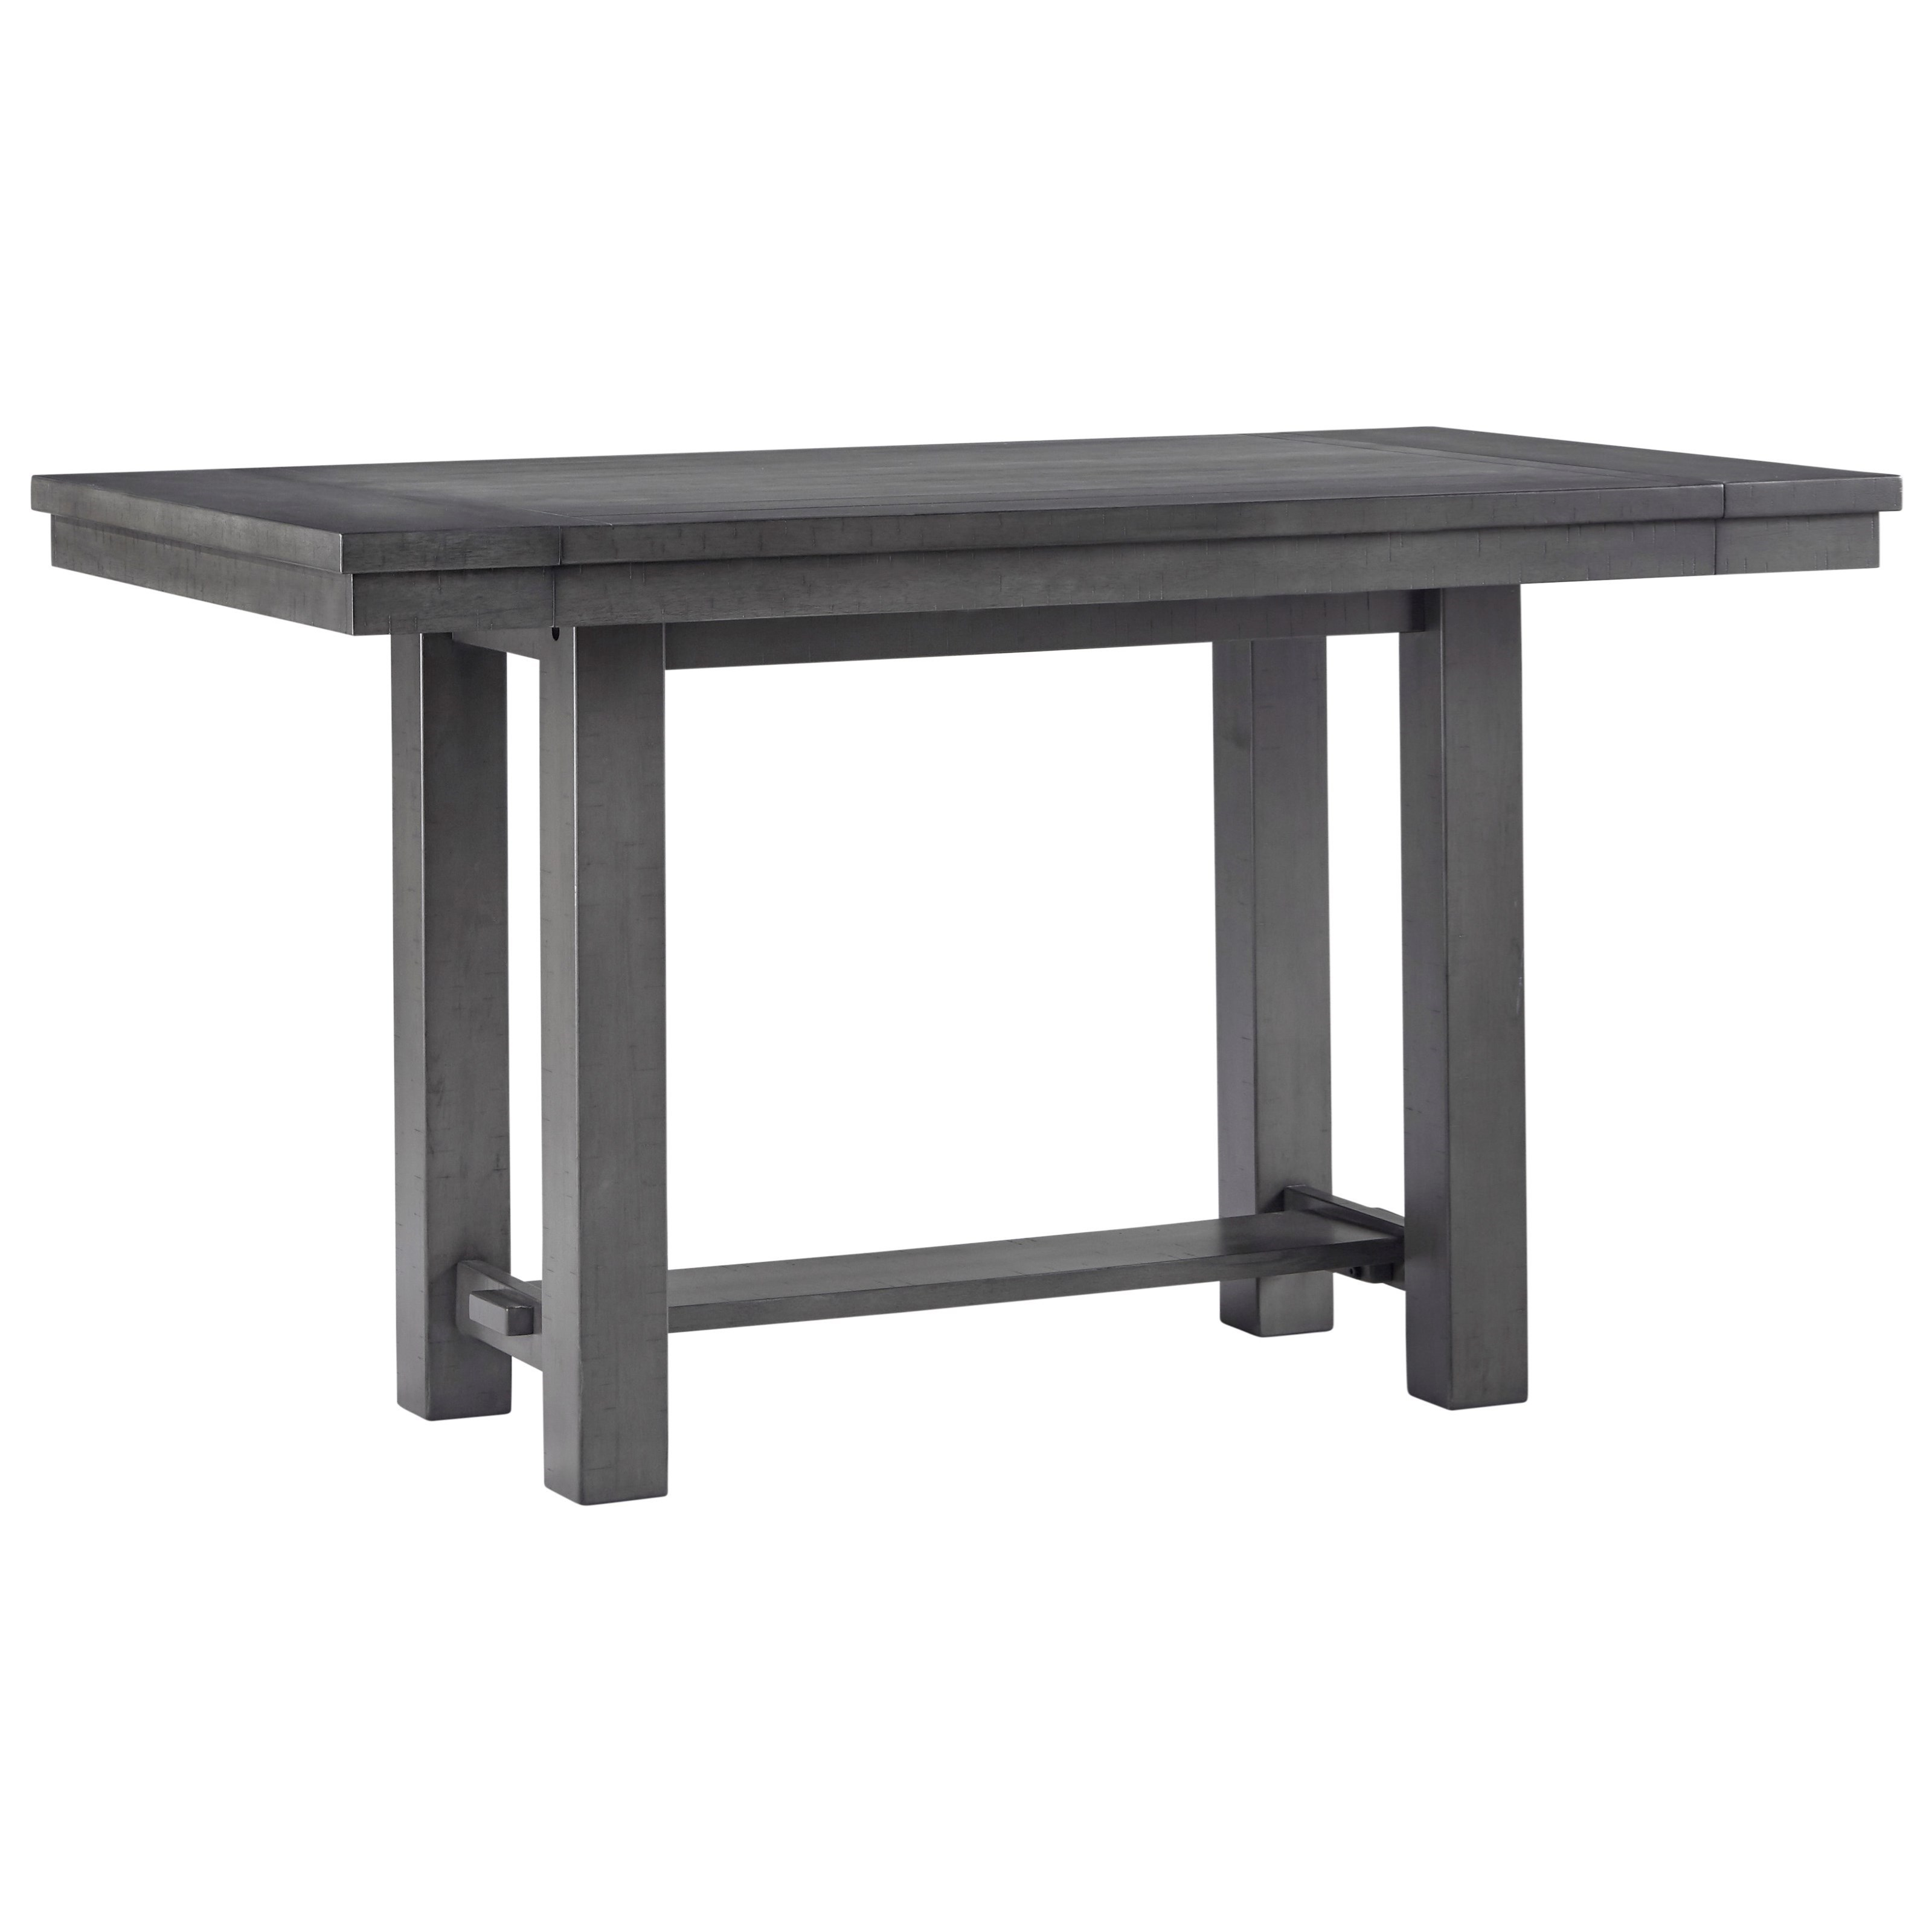 Myshanna Counter Height Dining Extension Table by Signature Design by Ashley at Furniture Barn